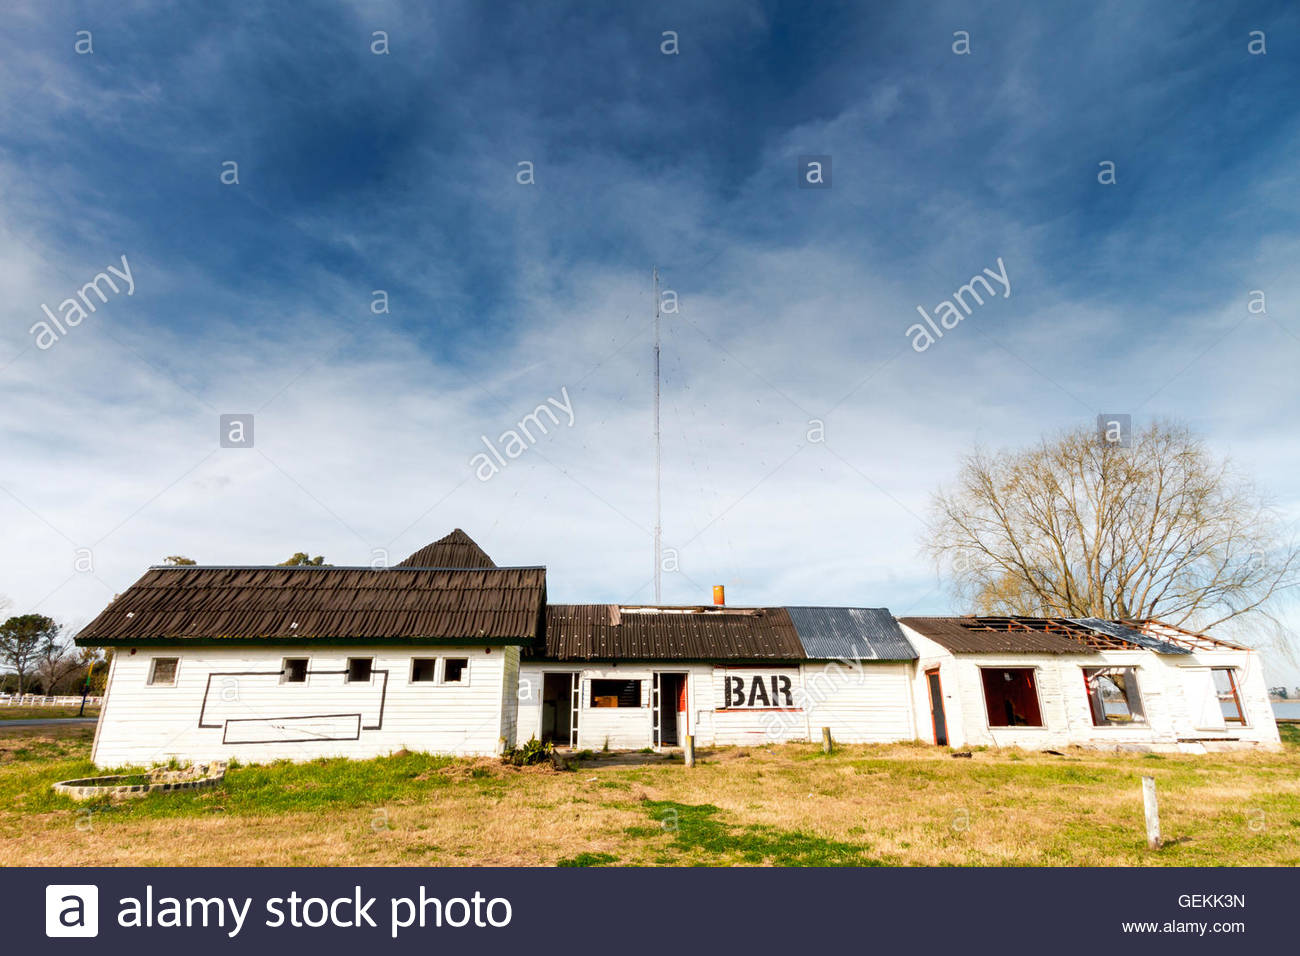 Abandoned front of a bar built with white woods with a lake behind - Stock Image